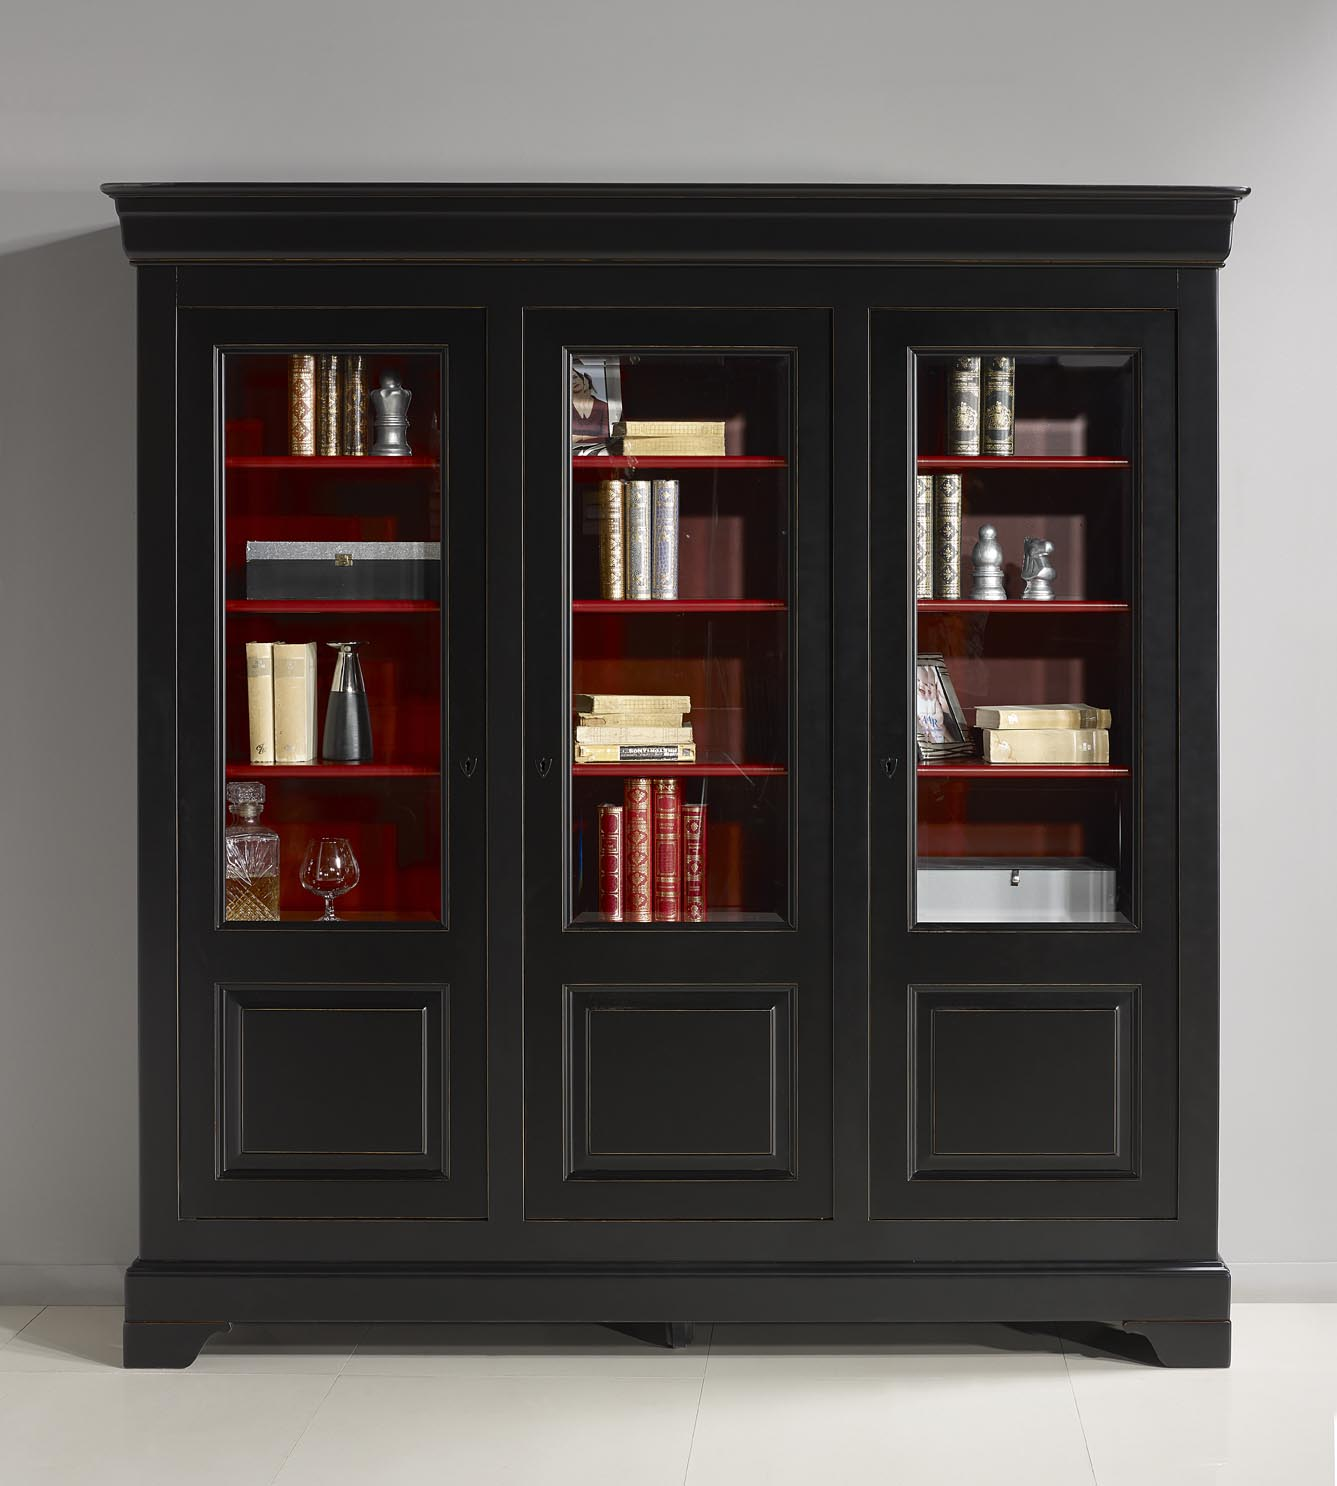 relooker une bibliotheque en merisier maison design. Black Bedroom Furniture Sets. Home Design Ideas